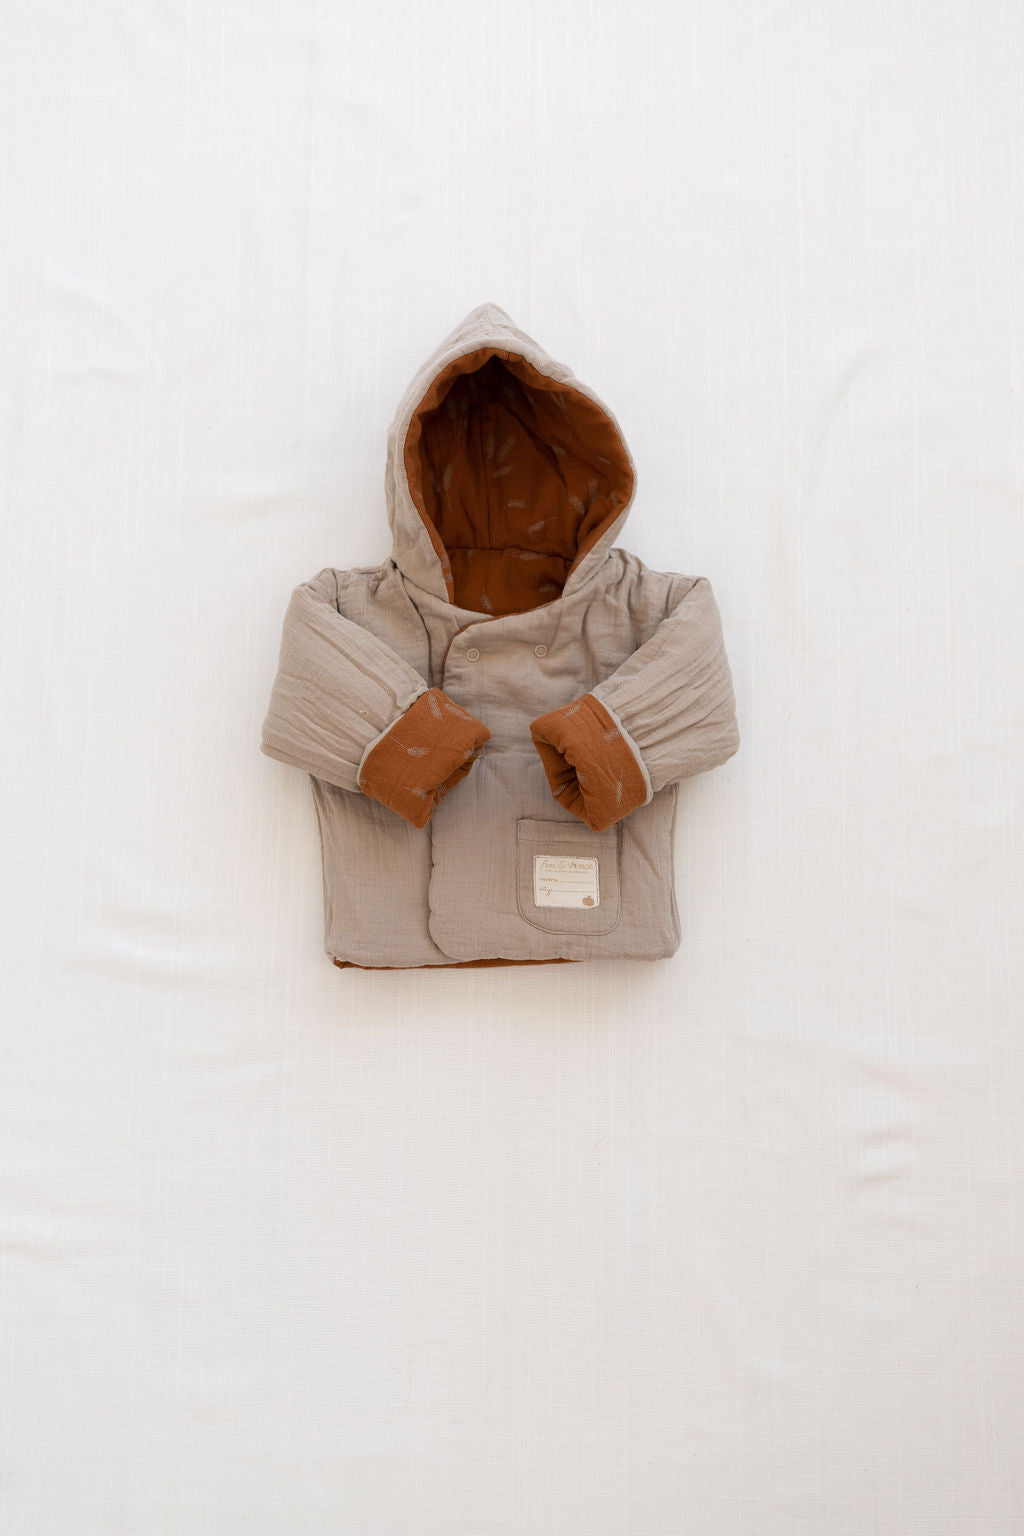 Fin and Vince - Reversible Cozy Jacket (Wheat)